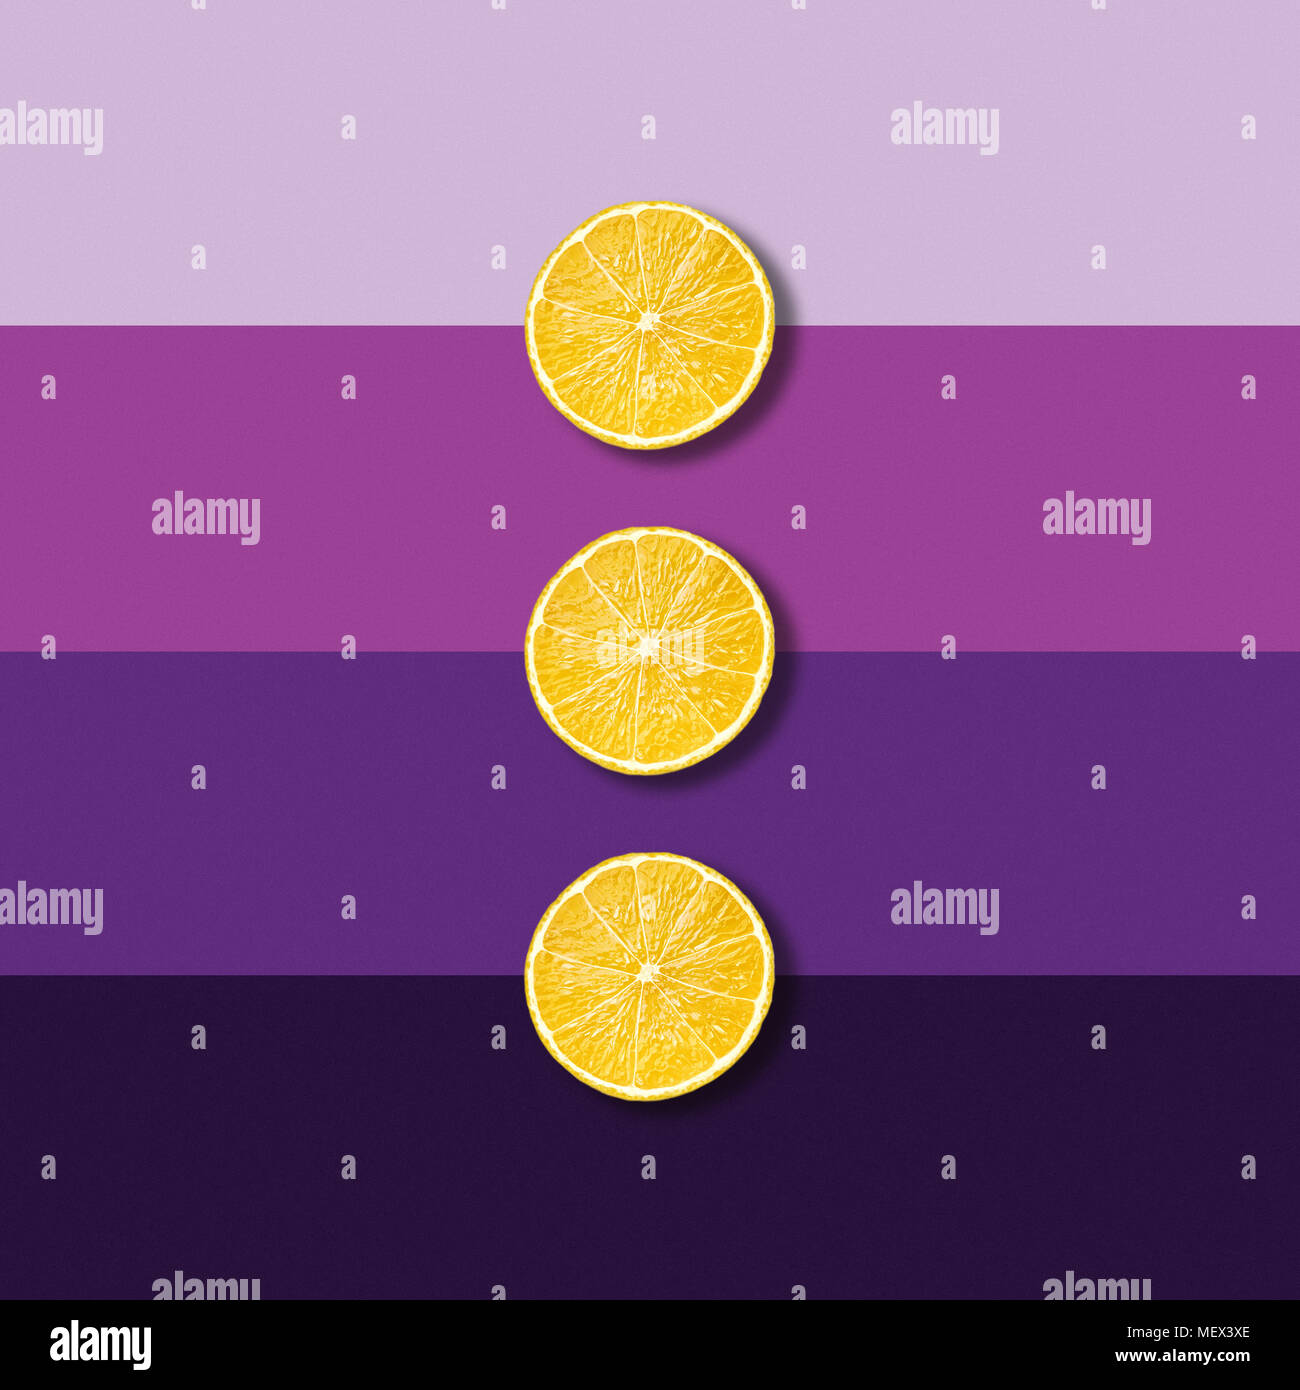 Trois tranches de fruits de citron sur fond violet électrique, pop art abstrait photo Photo Stock